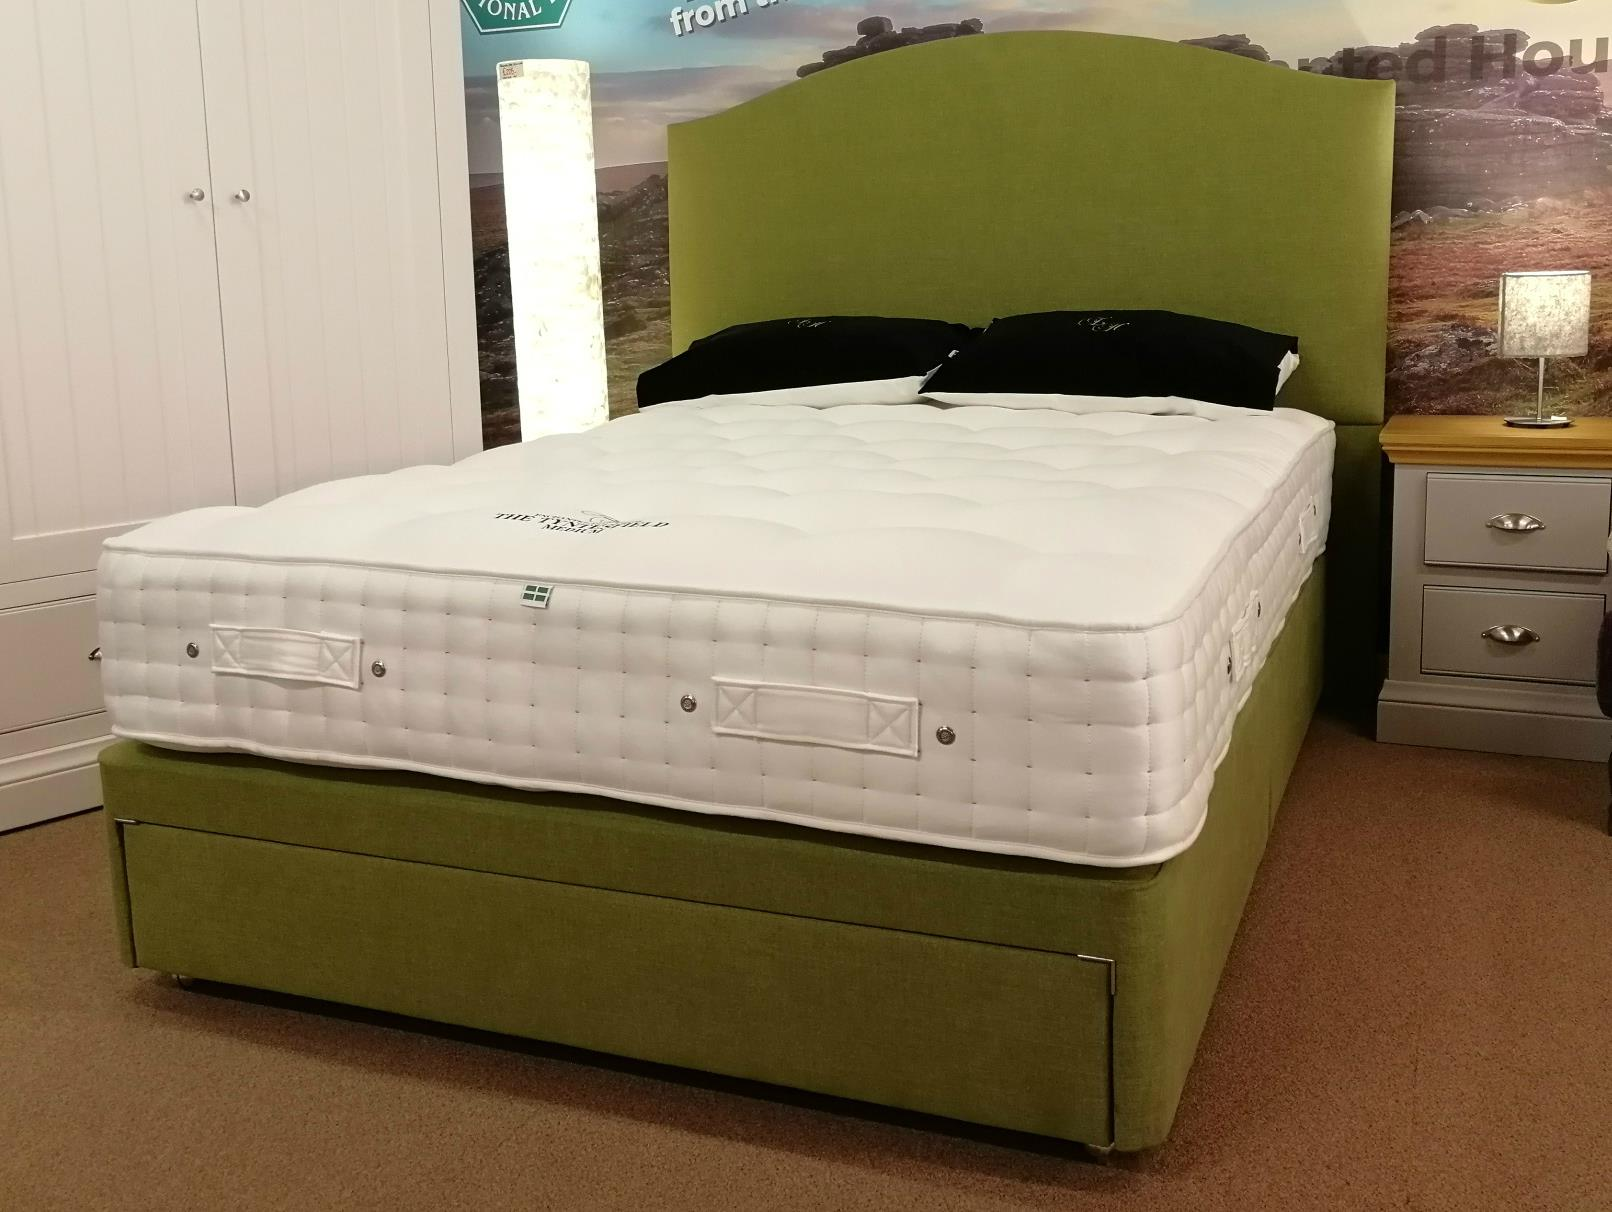 TYNTESFIELD Mattress & Divan sets